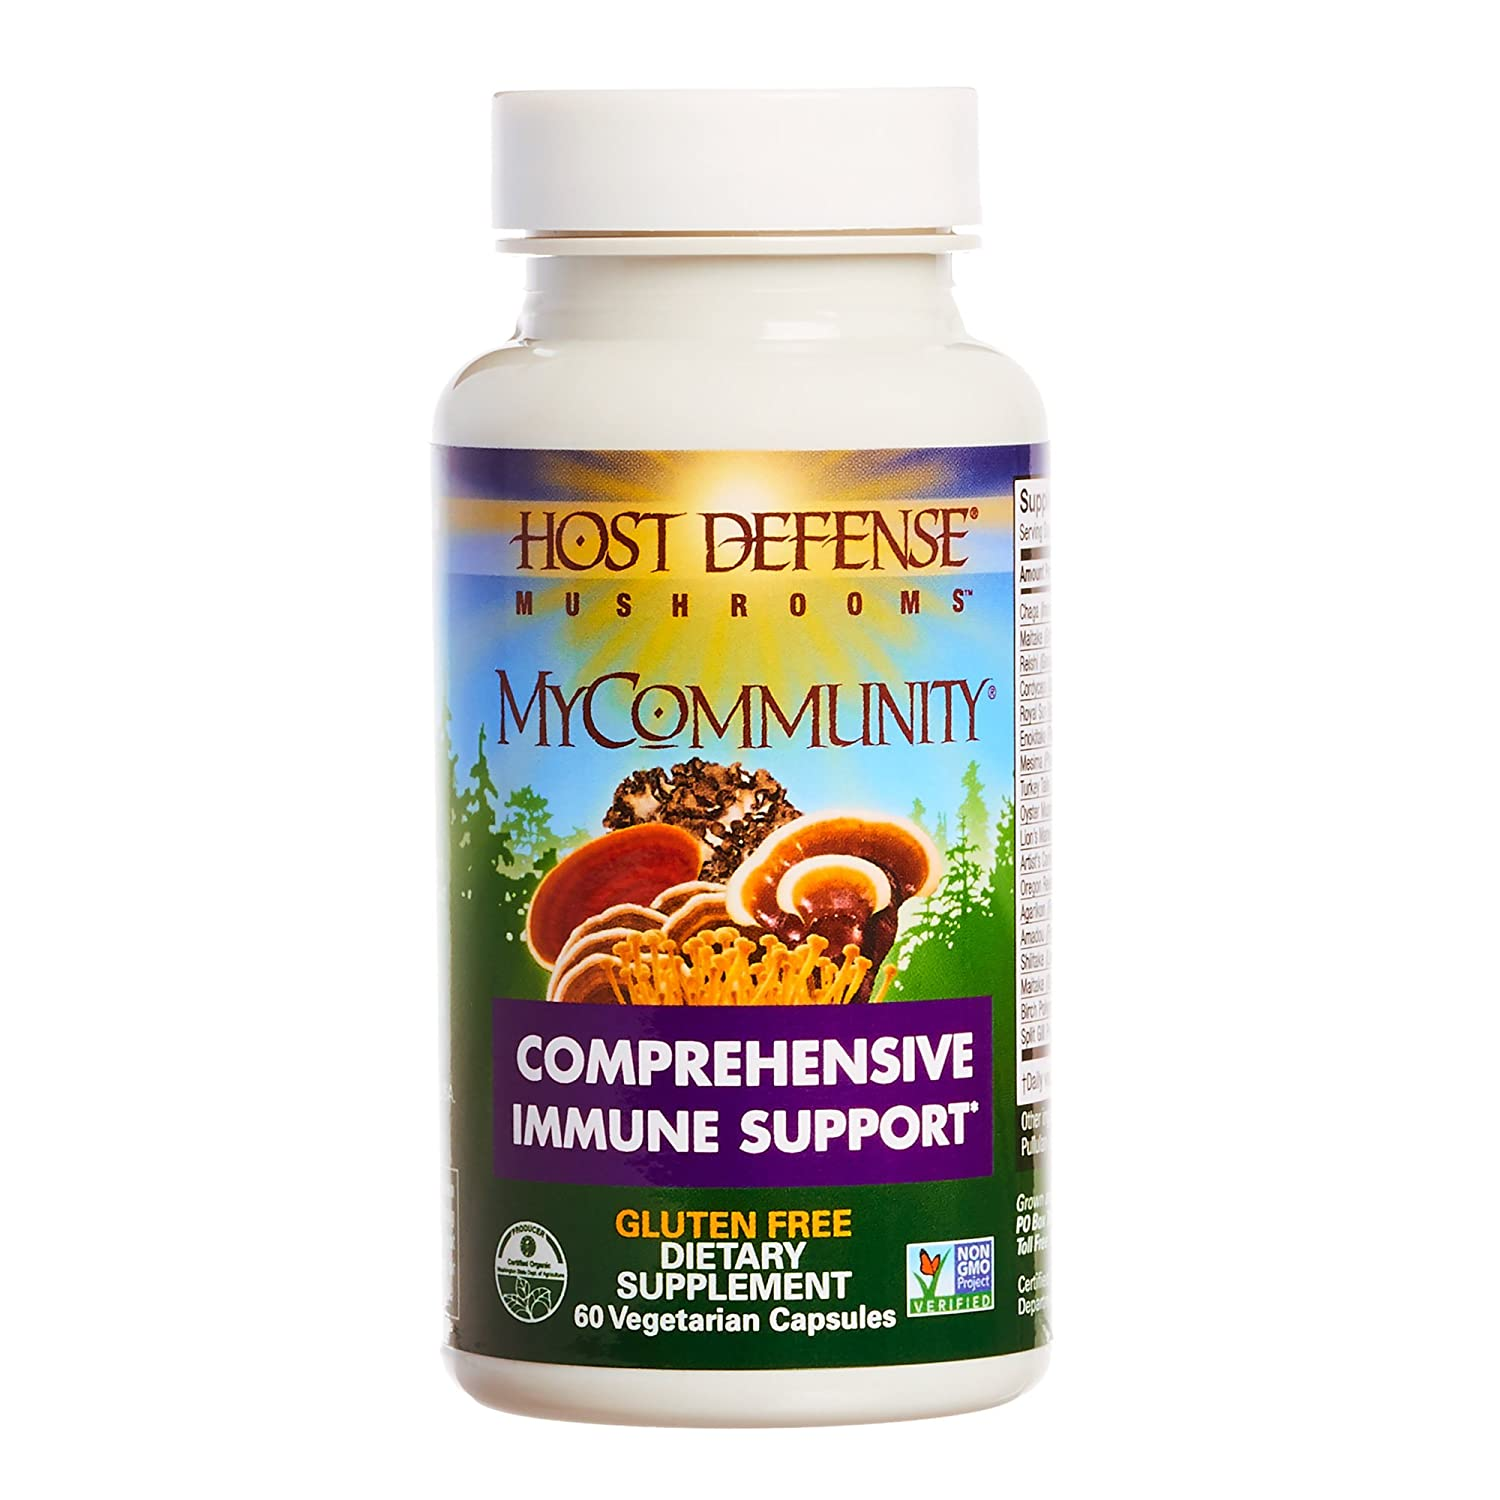 Host Defense – MyCommunity Multi Mushroom Capsules, Comprehensive Support for a Robust and Resilient Immune System with Lion s Mane, Turkey Tails, and Reishi, Non-GMO, Vegan, Organic, 60 Count